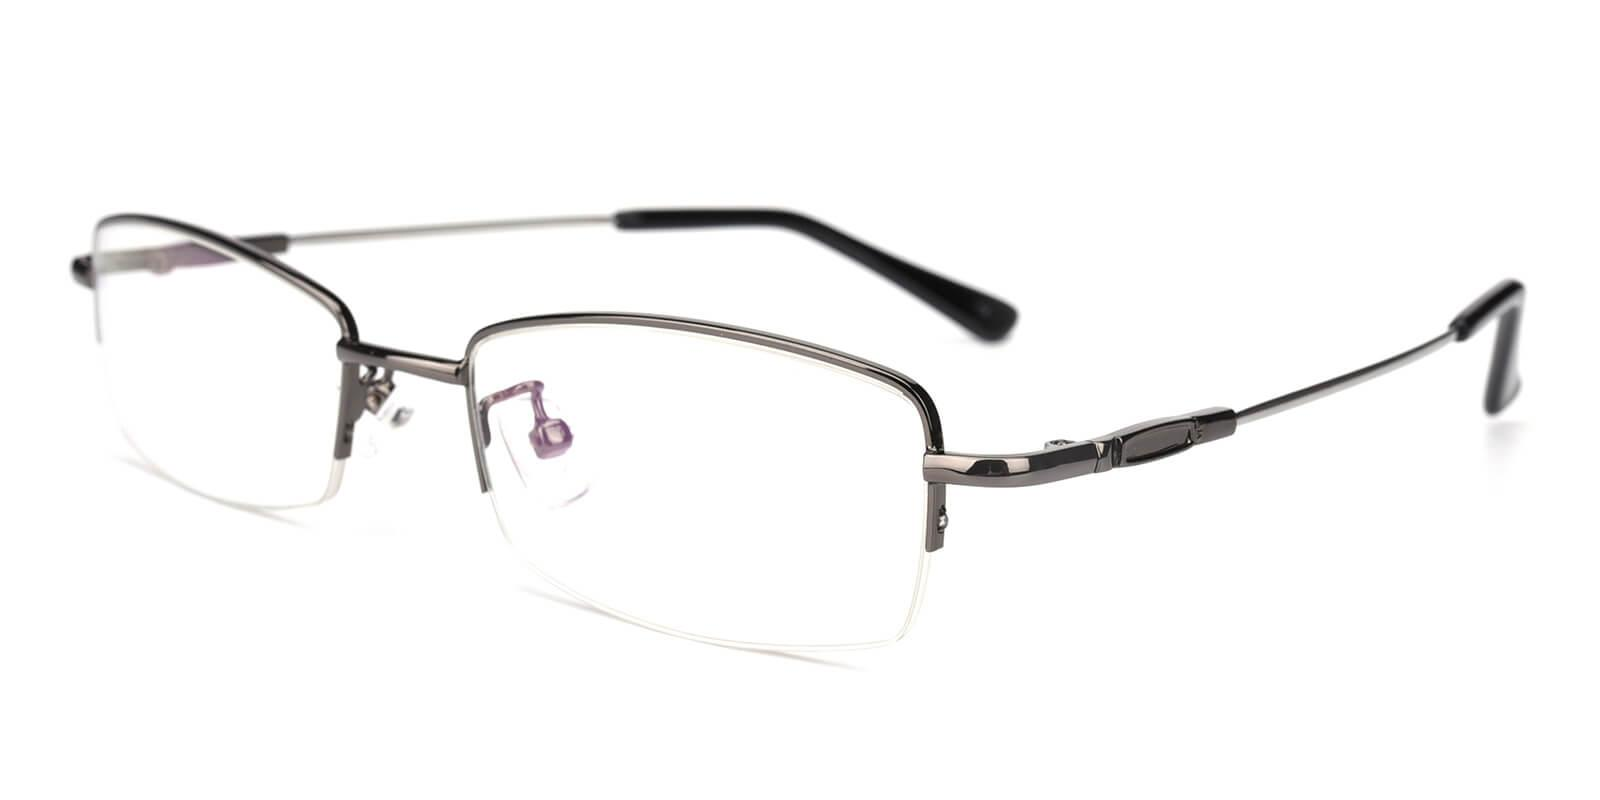 Healdton-Gun-Rectangle-Metal-Eyeglasses-detail